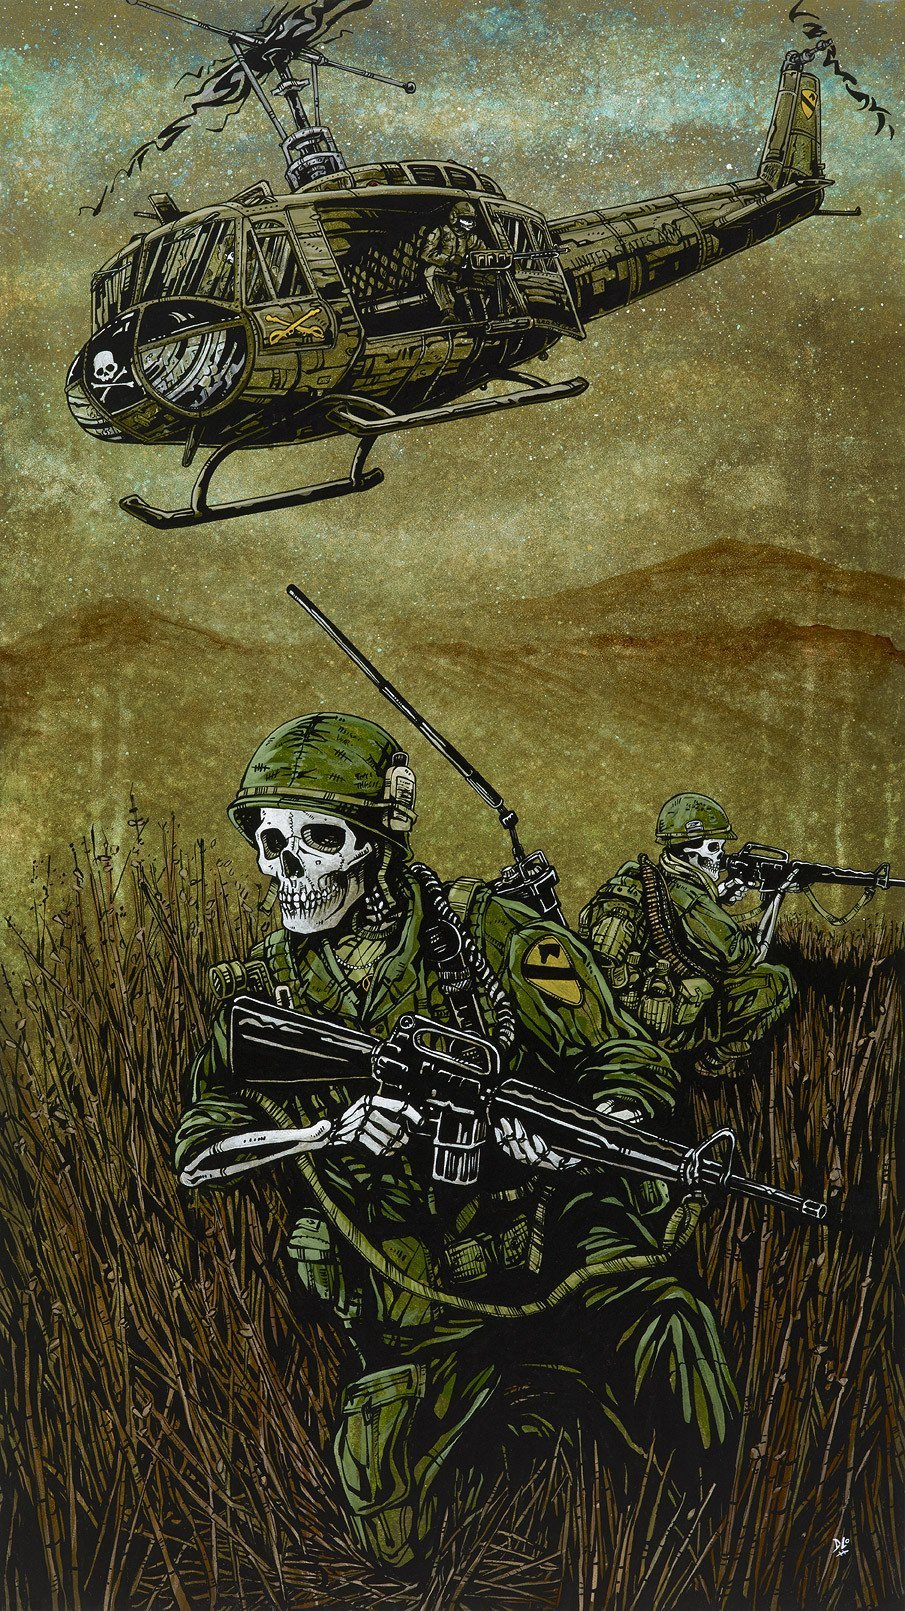 1st Air Cav by Day of the Dead Artist David Lozeau, Day of the Dead Art, Dia de los Muertos Art, Dia de los Muertos Artist